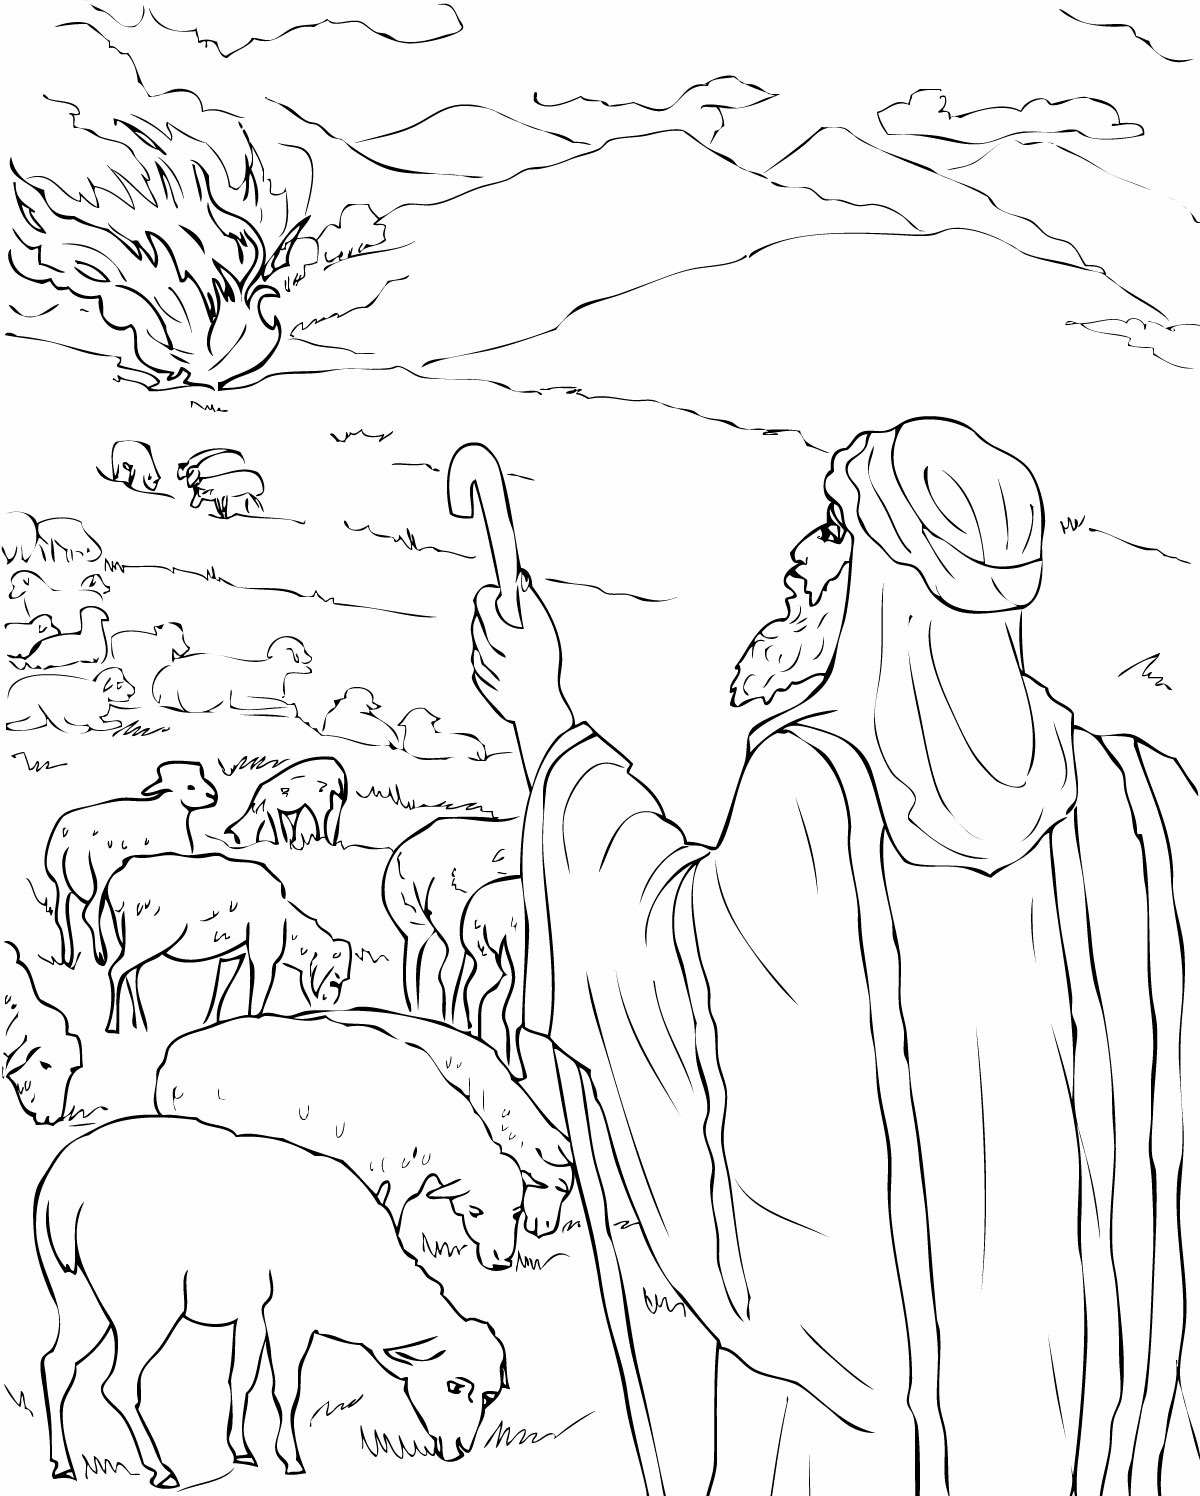 free printable moses coloring pages free printable moses coloring pages for kids free coloring pages moses printable